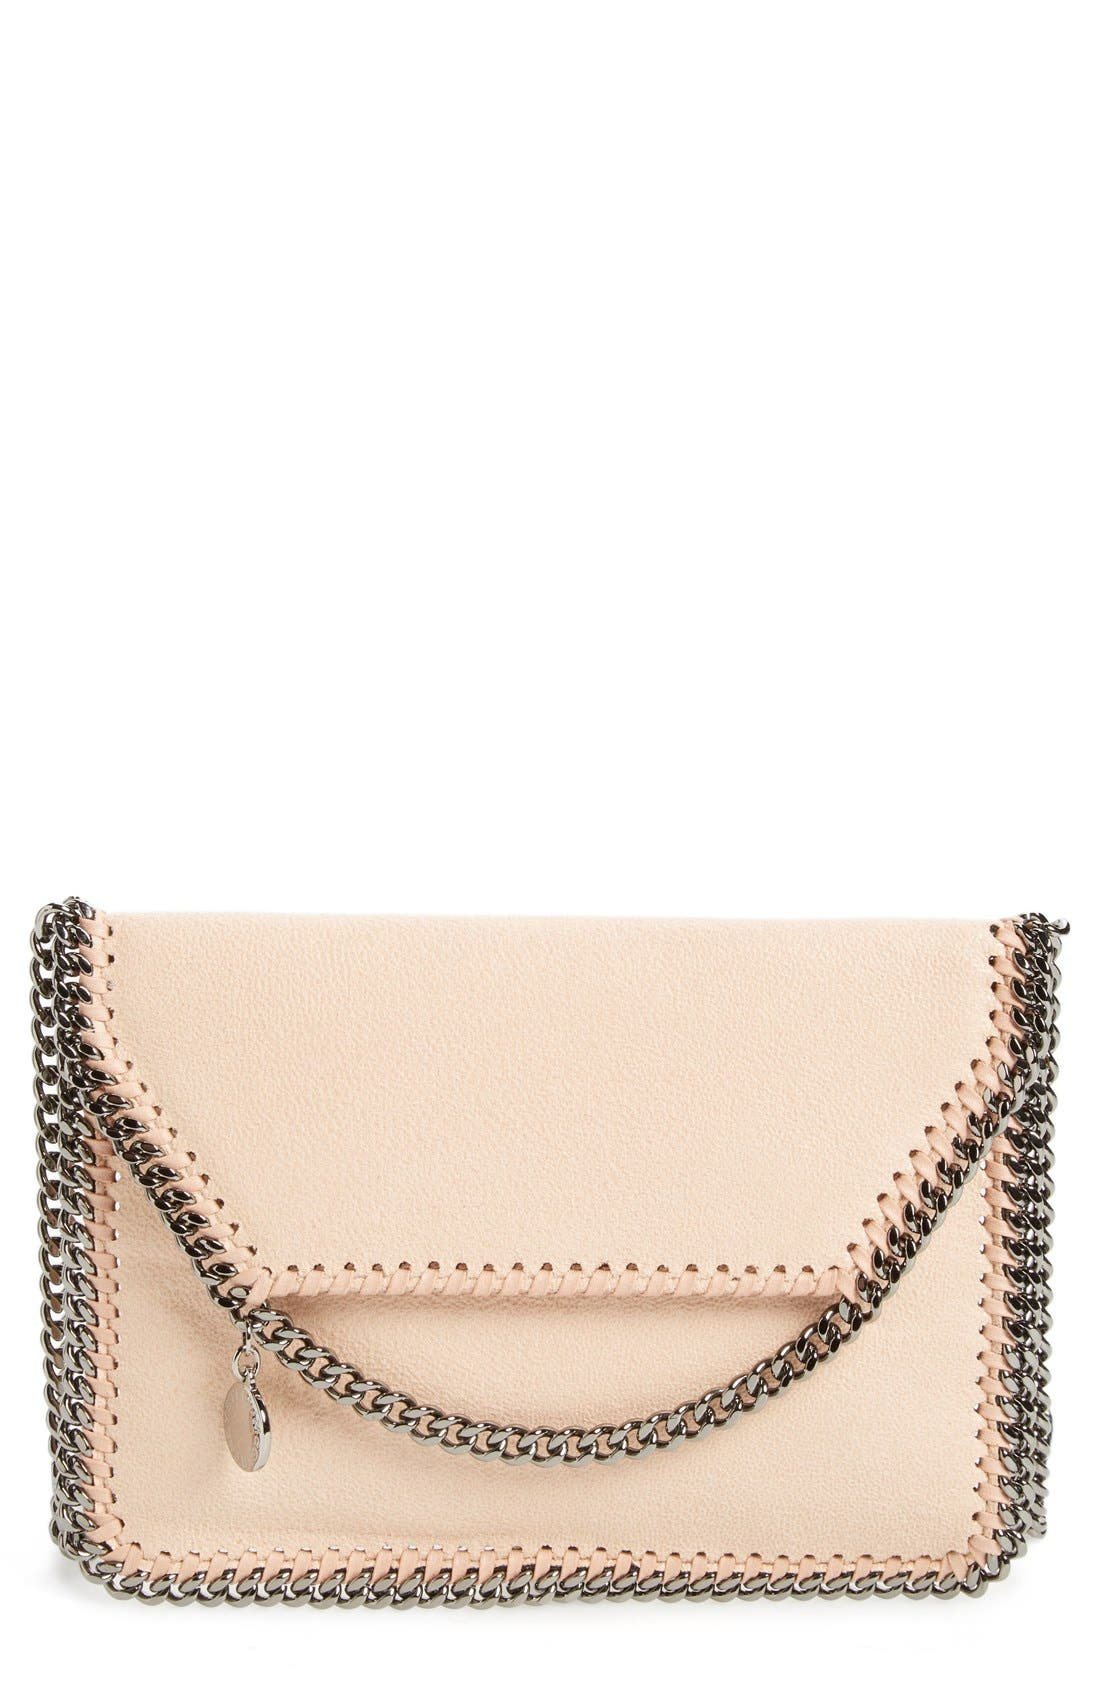 Stella McCartney 'Mini Falabella - Shaggy Deer' Faux Leather Crossbody Bag